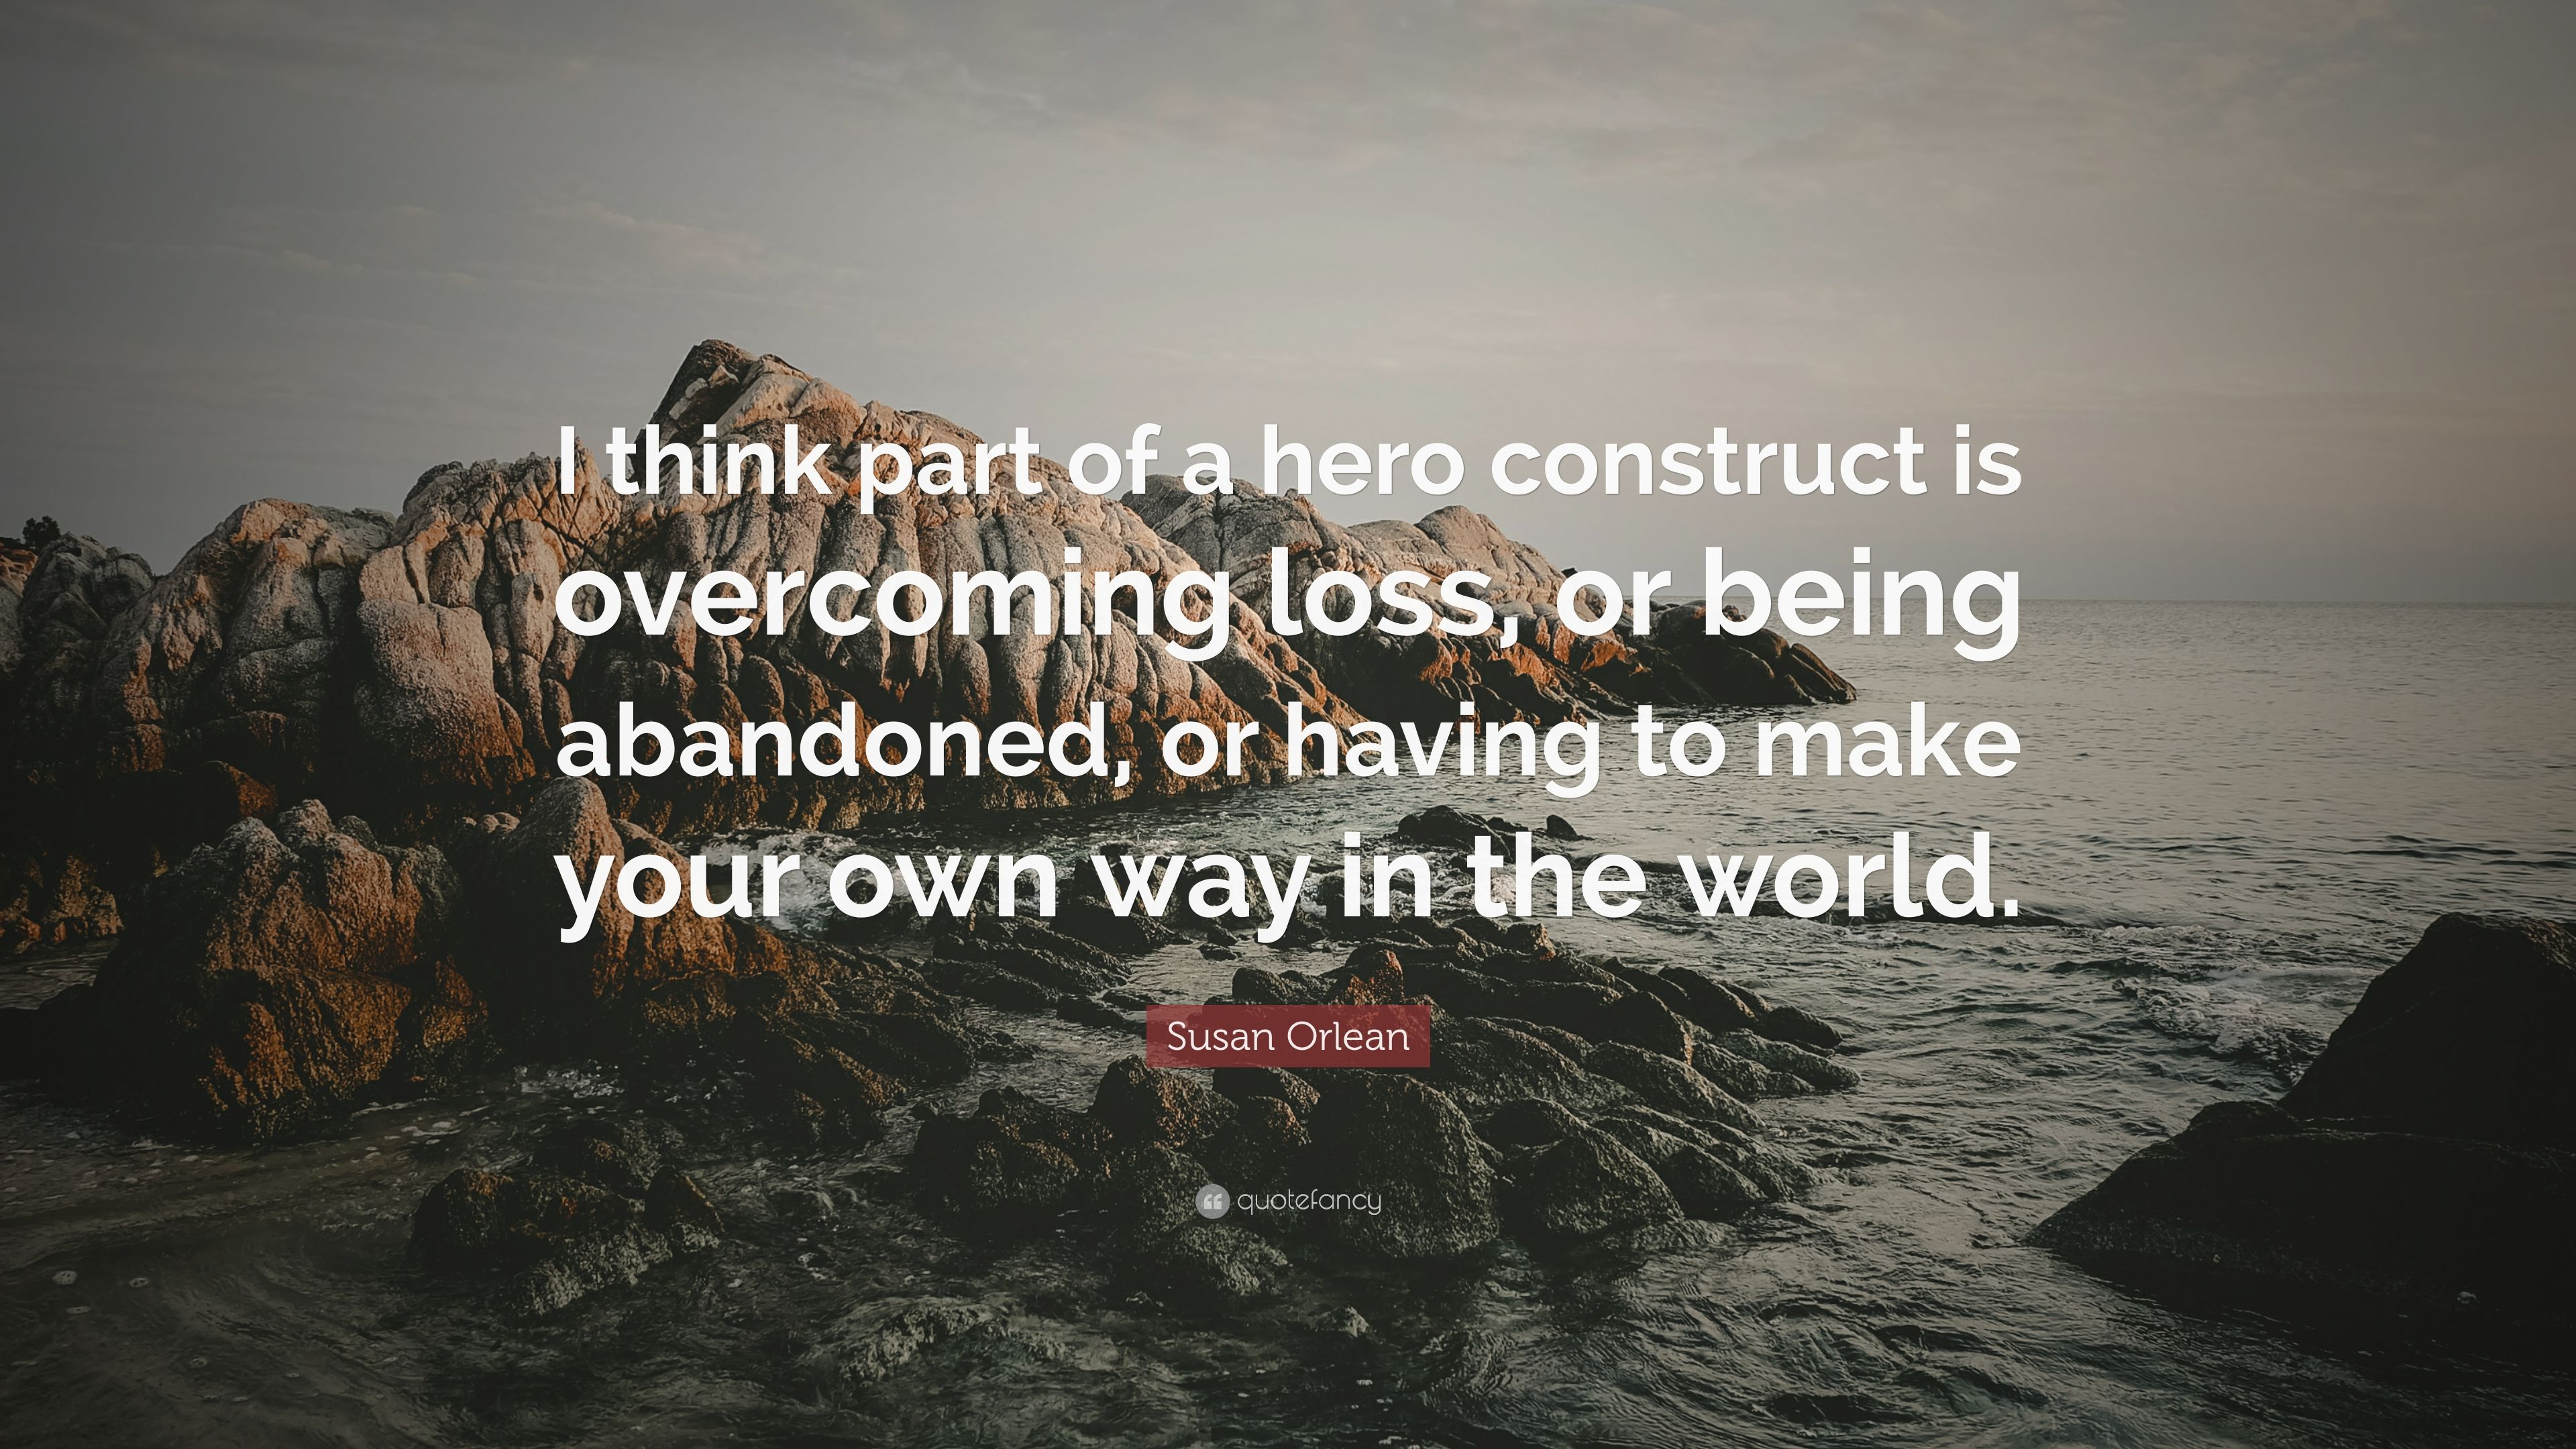 Susan Orlean Quote I Think Part Of A Hero Construct Is Overcoming Loss Or Being Abandoned Or Having To Make Your Own Way In The World 7 Wallpapers Quotefancy